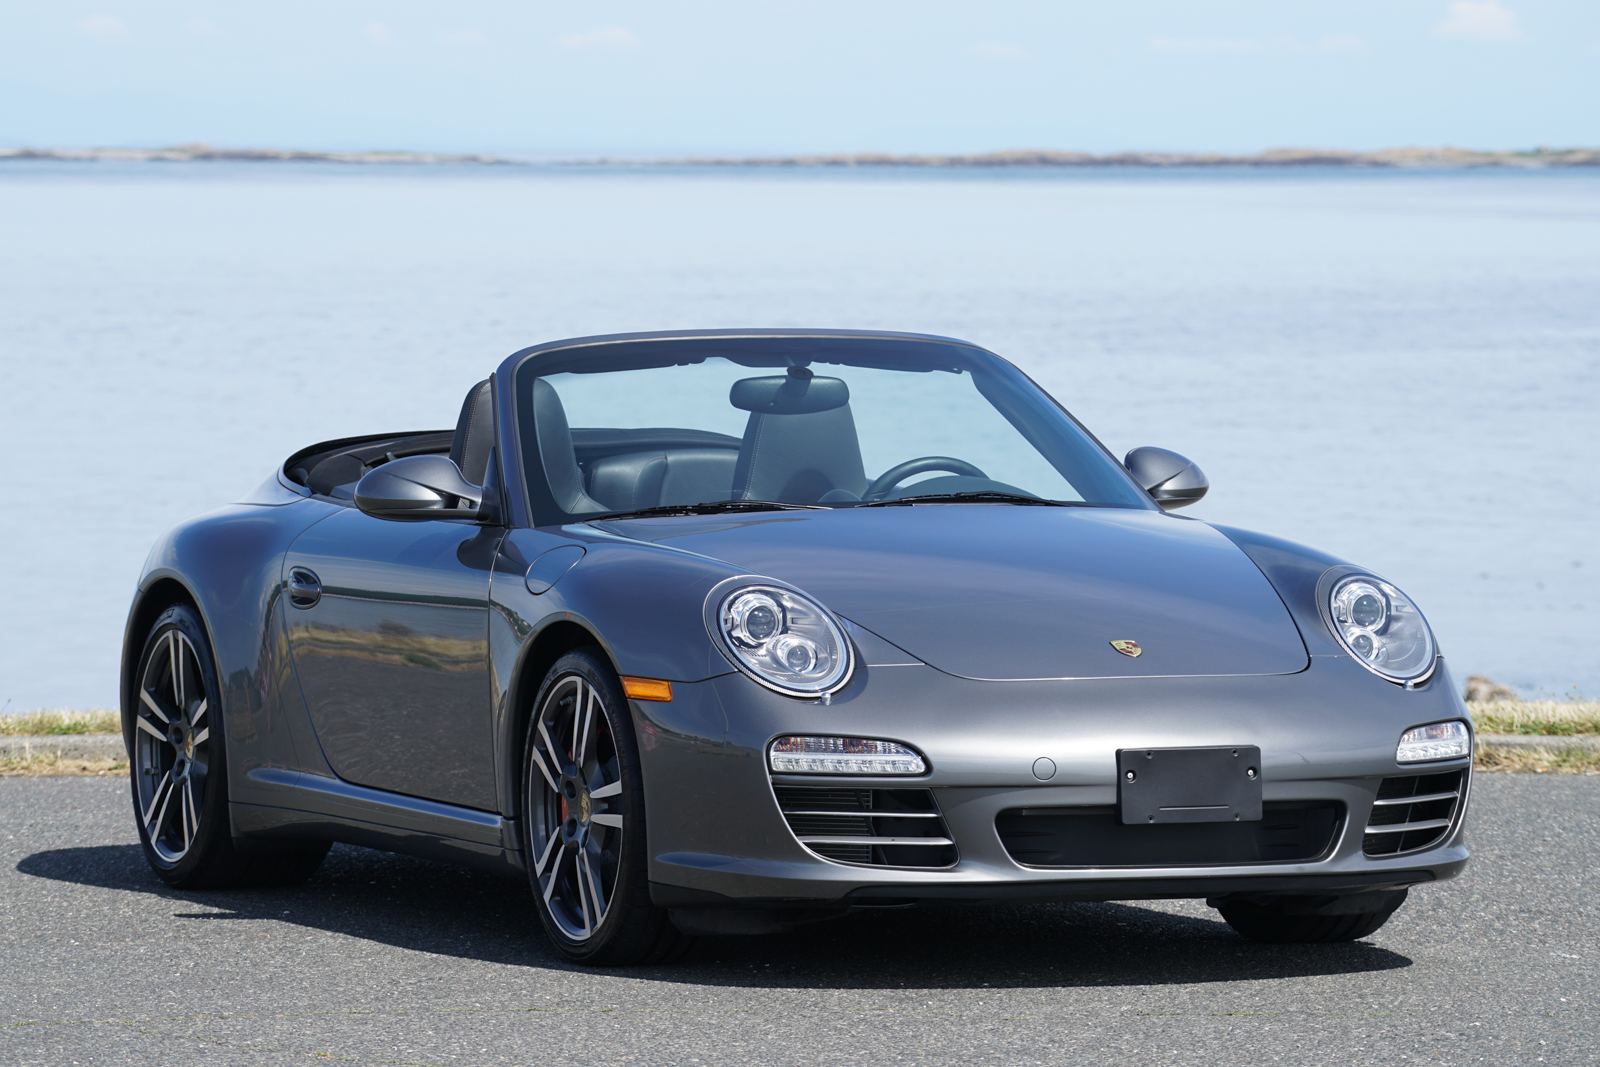 2011 porsche 911 carrera 4s cabriolet for sale silver. Black Bedroom Furniture Sets. Home Design Ideas